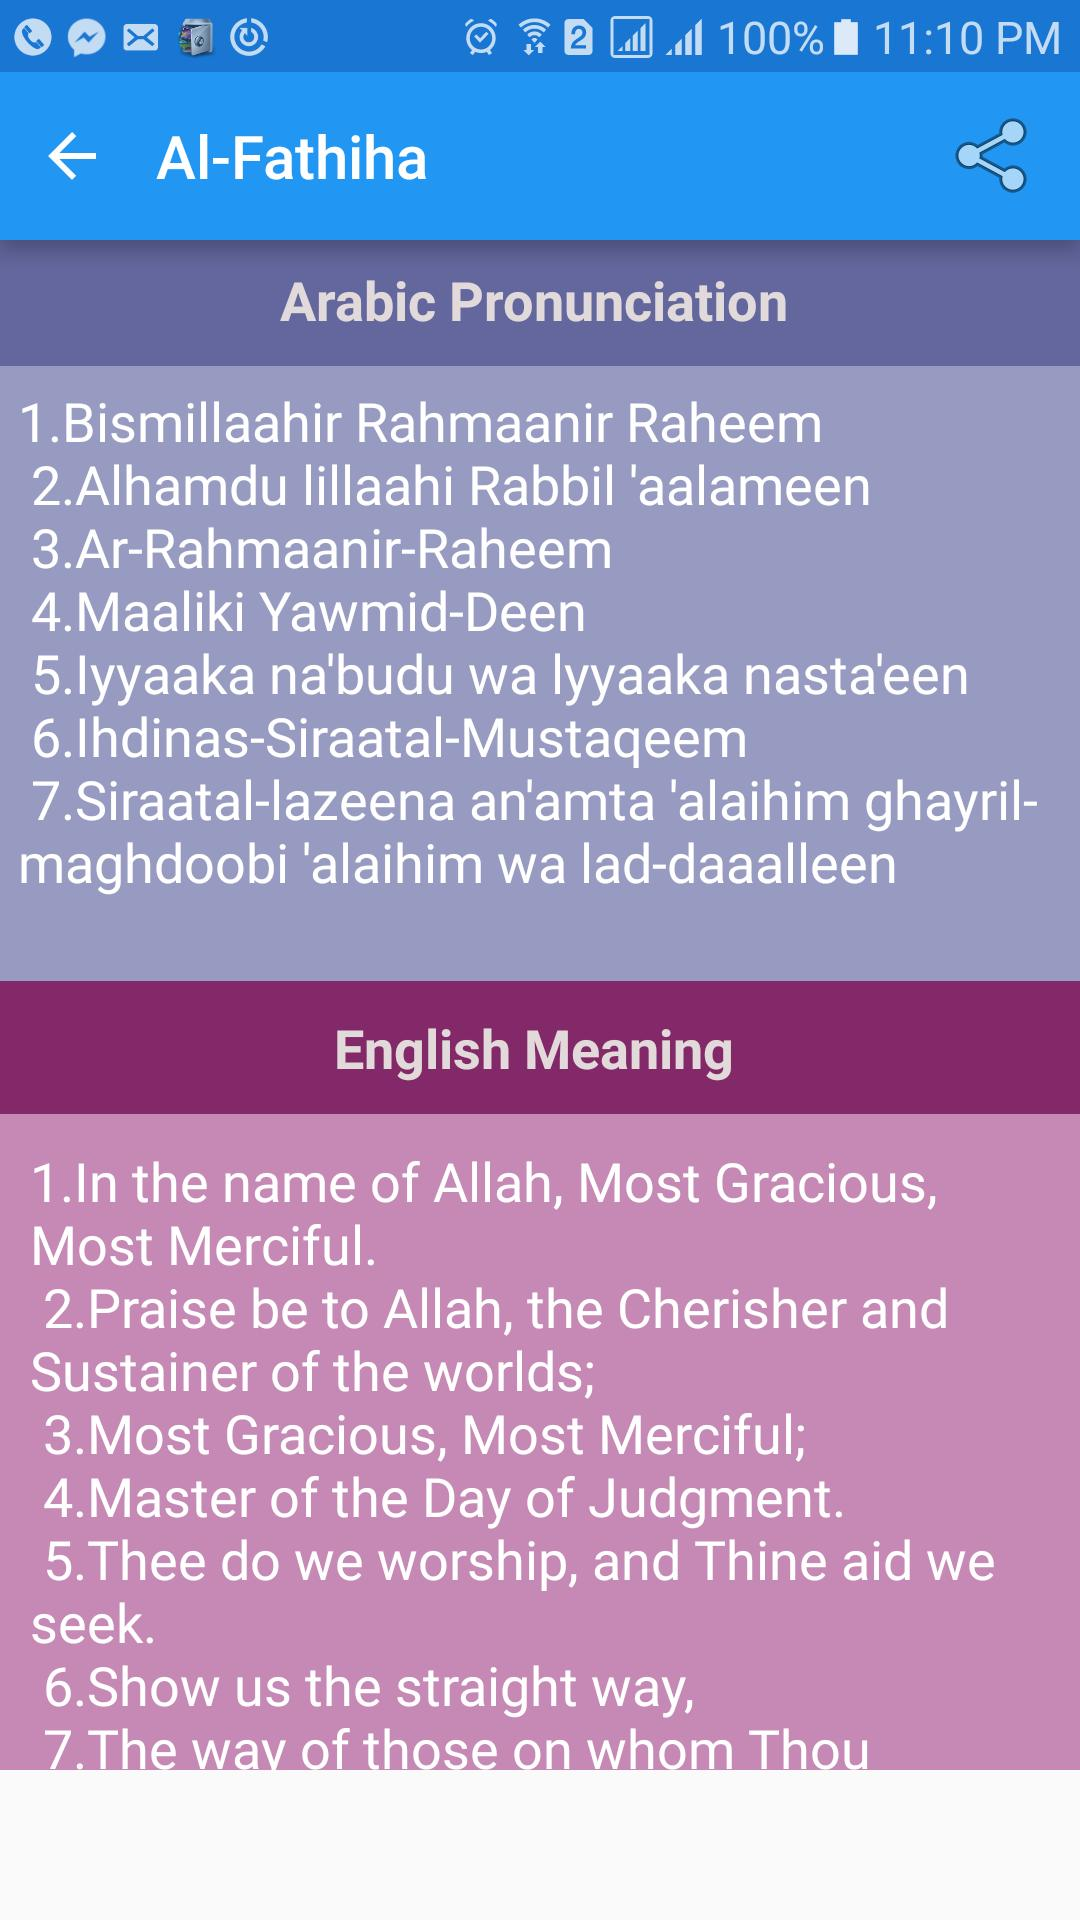 25 Surah with Meaning and Tafseer for Android - APK Download